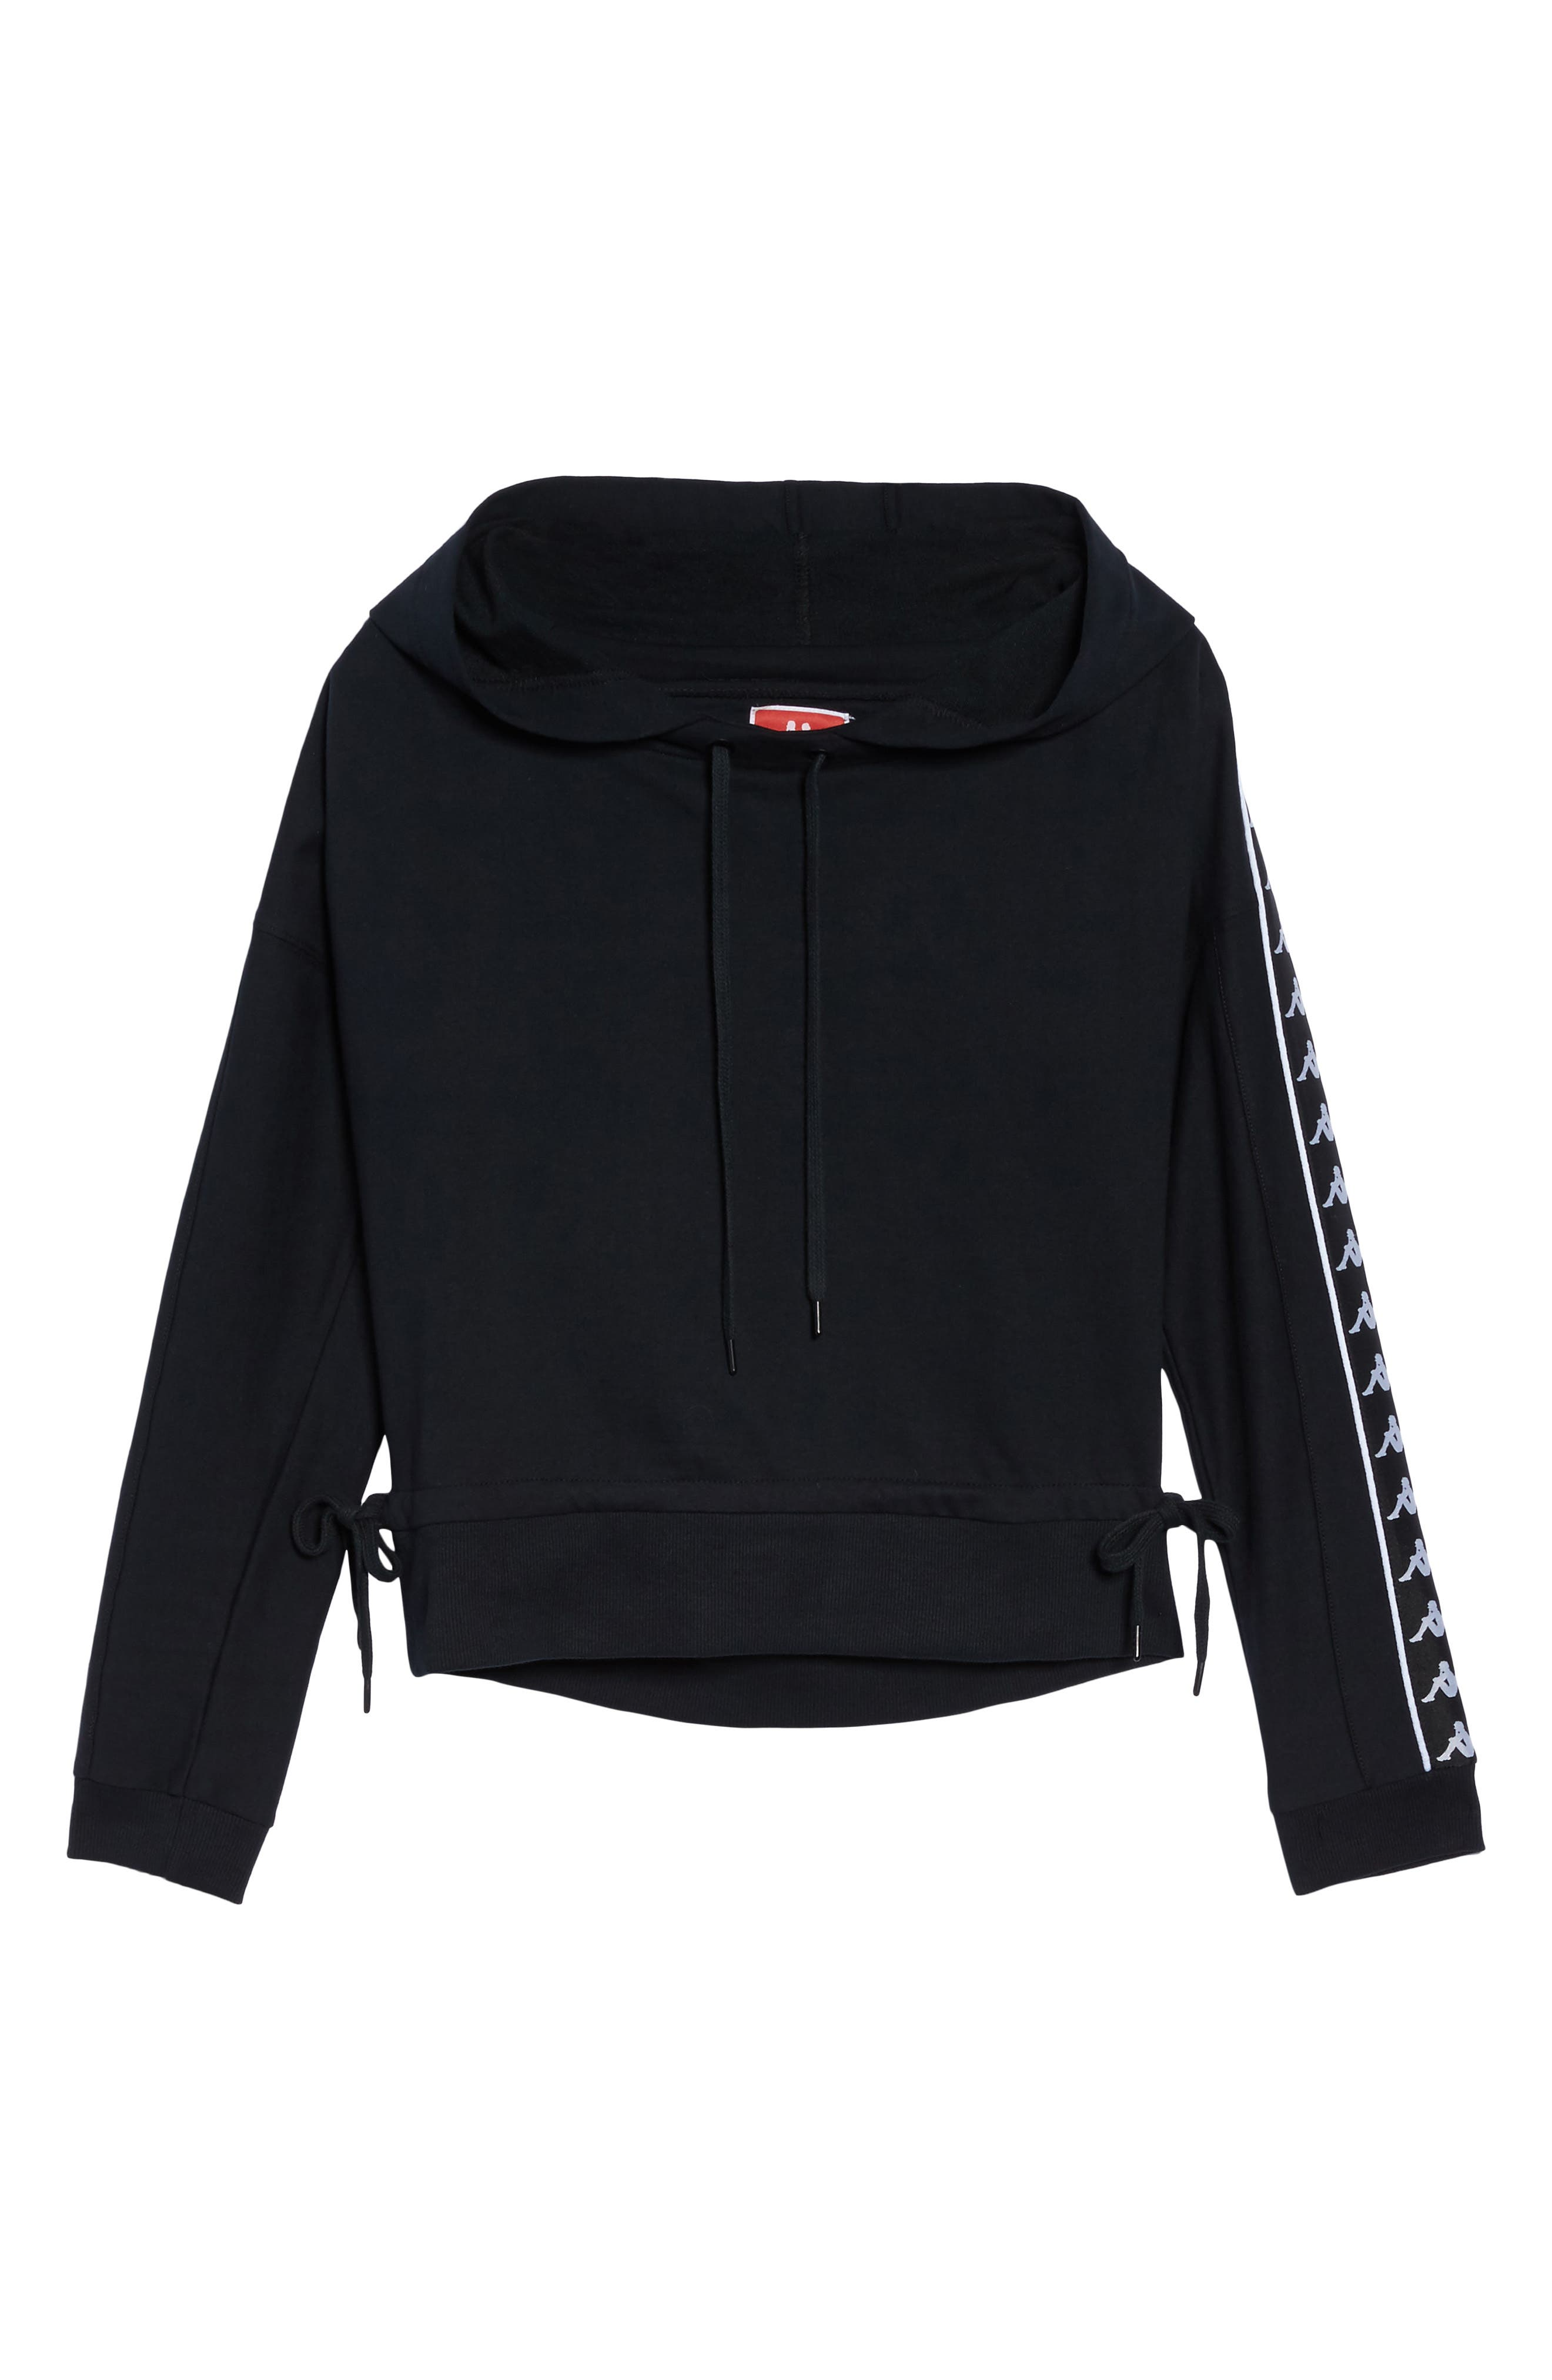 Authentic Frostie Hoodie,                             Alternate thumbnail 7, color,                             001